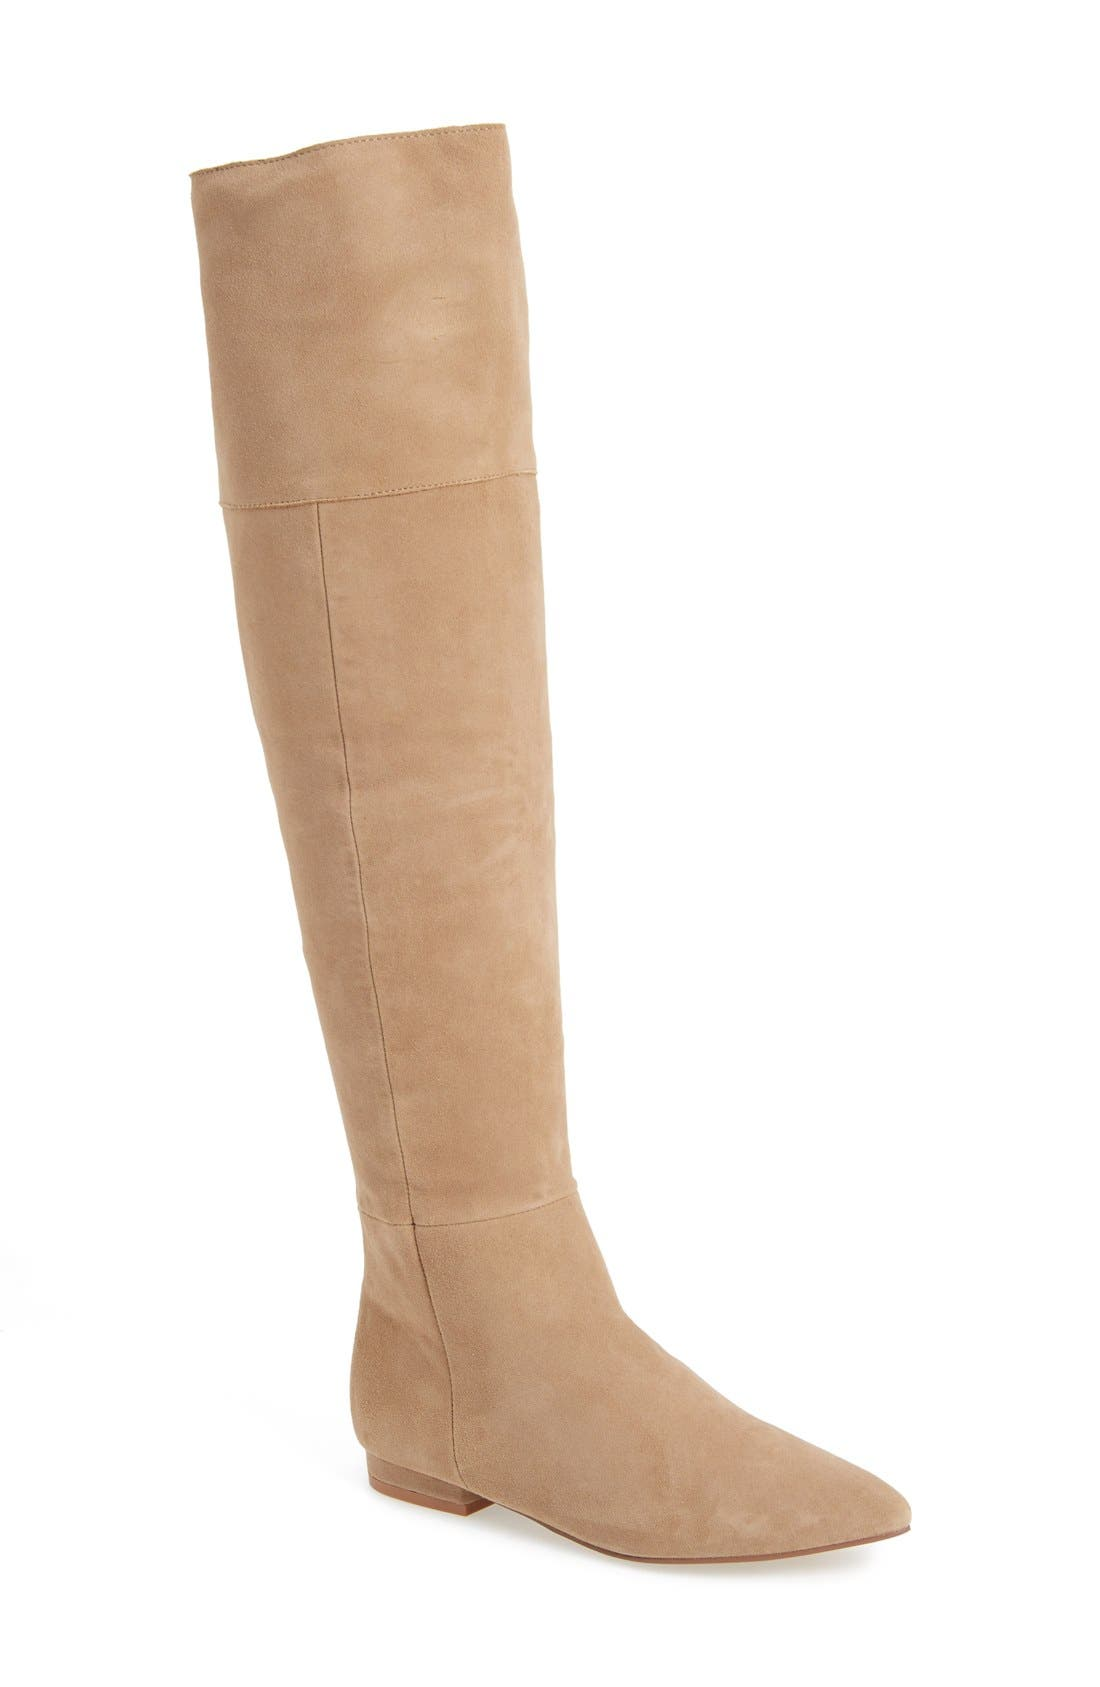 Main Image - Kristin Cavallari 'York' Over the Knee Boot (Women)